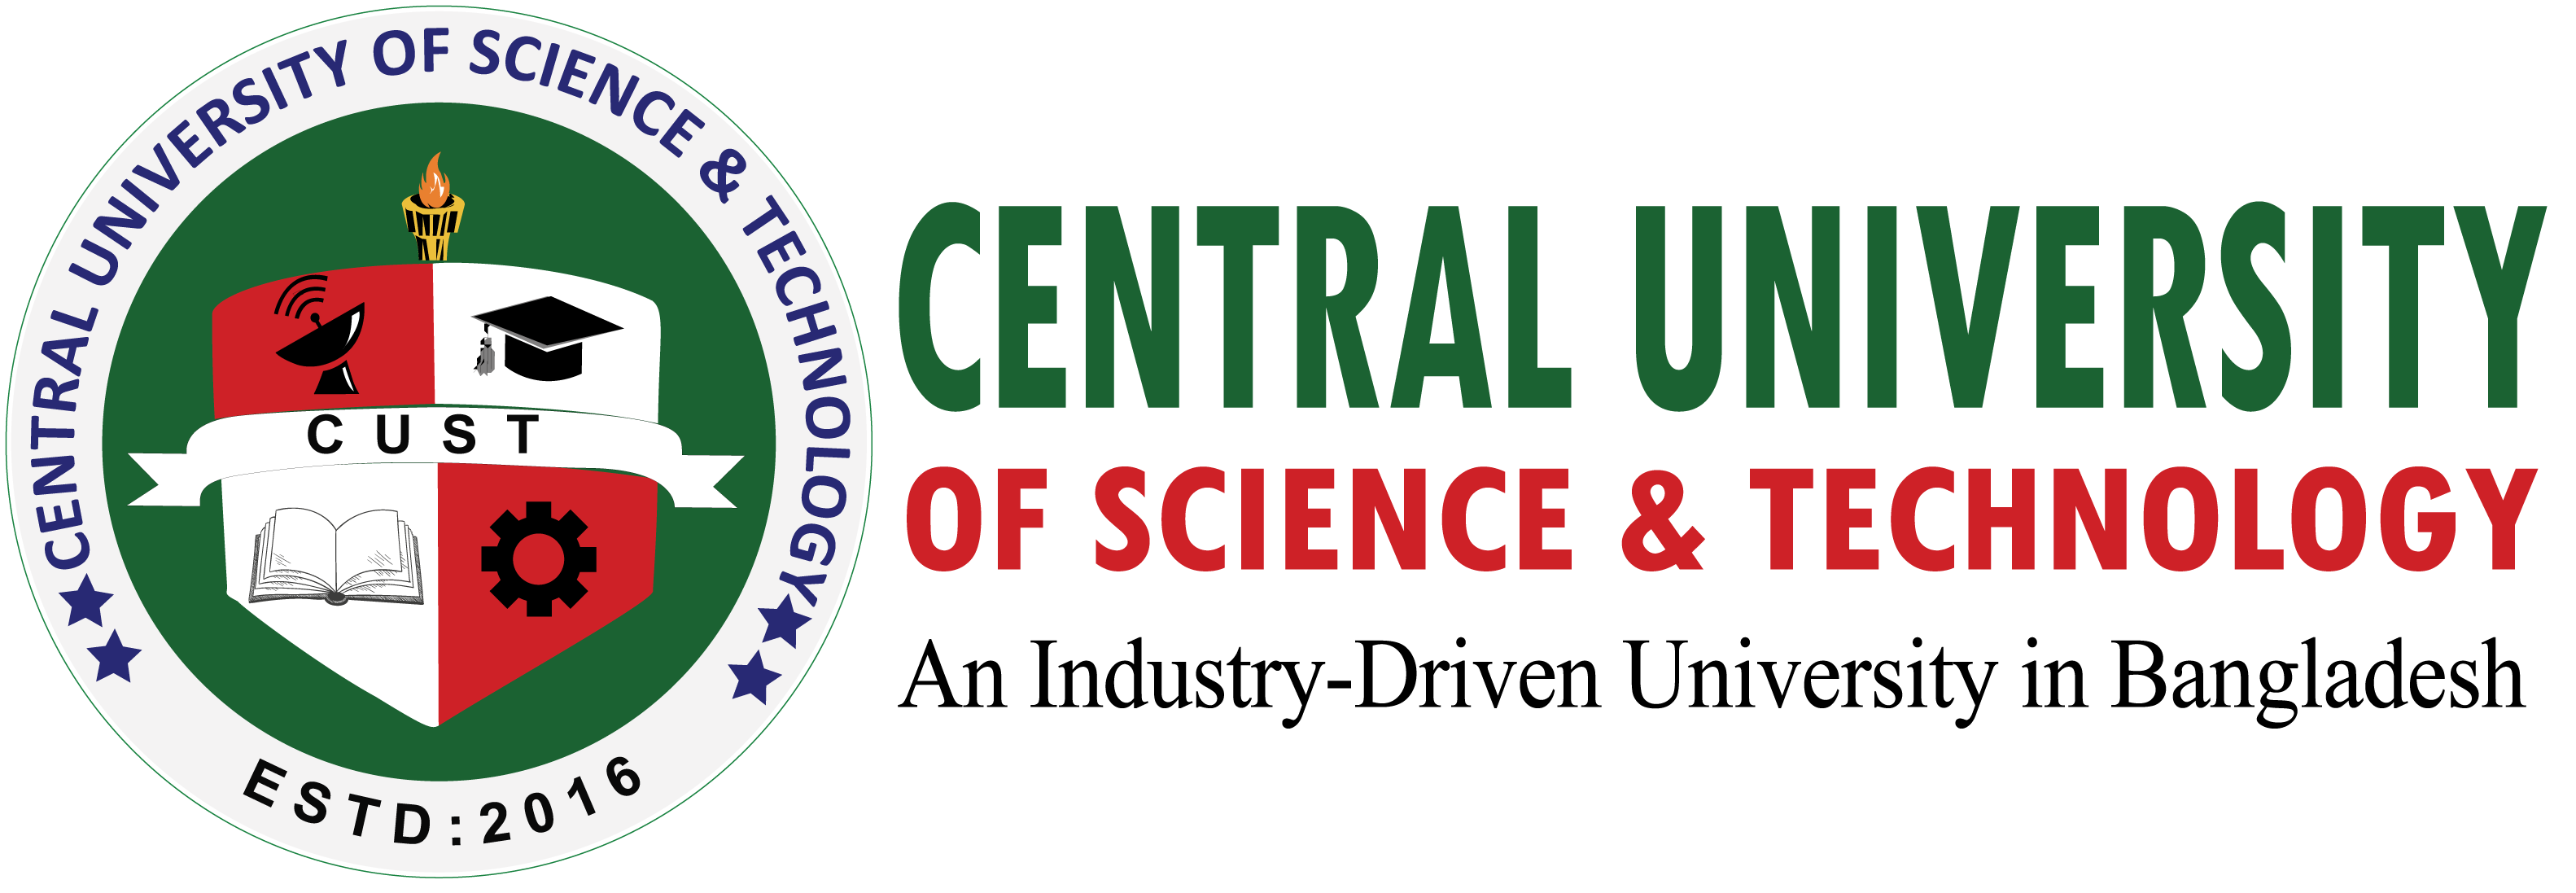 Contact - Central University of Science & Technology